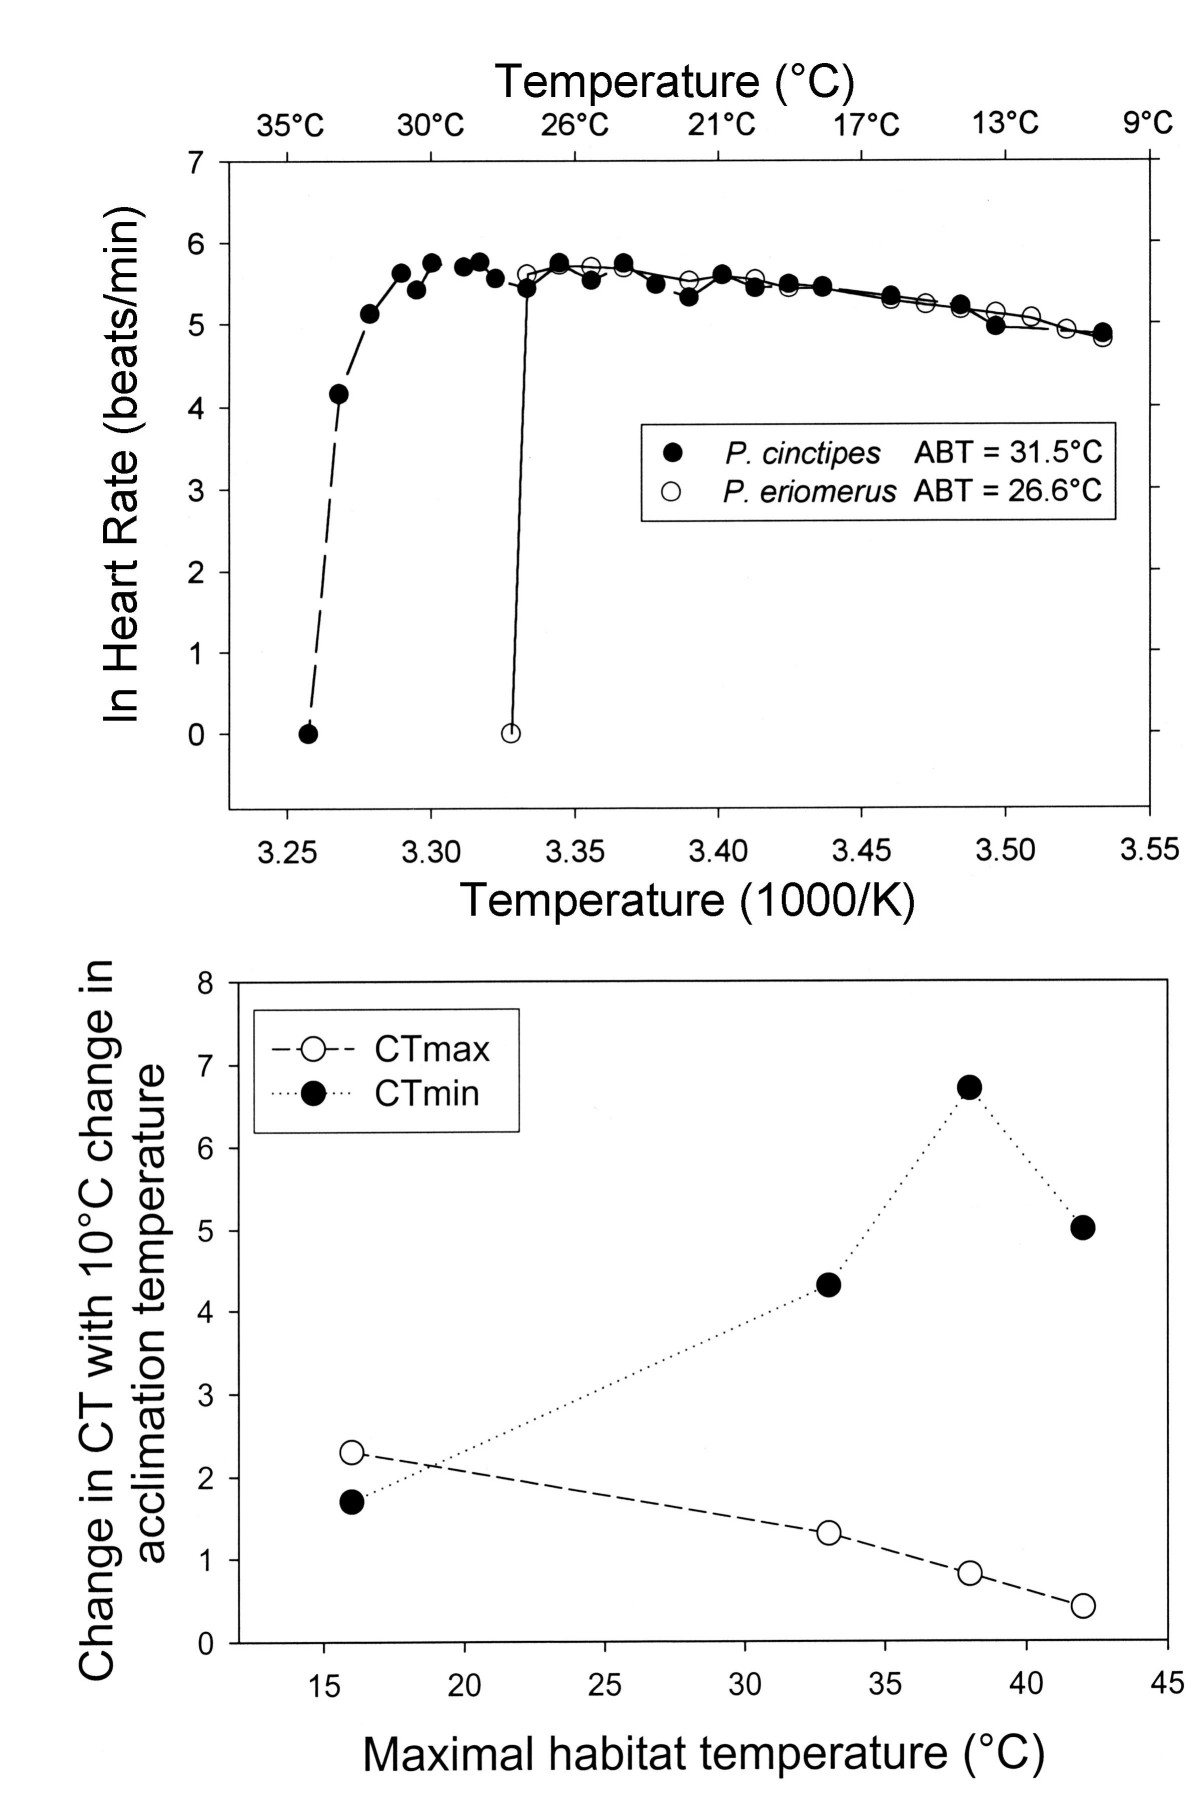 https://static-content.springer.com/image/art%3A10.1186%2F1742-9994-2-1/MediaObjects/12983_2004_Article_7_Fig2_HTML.jpg